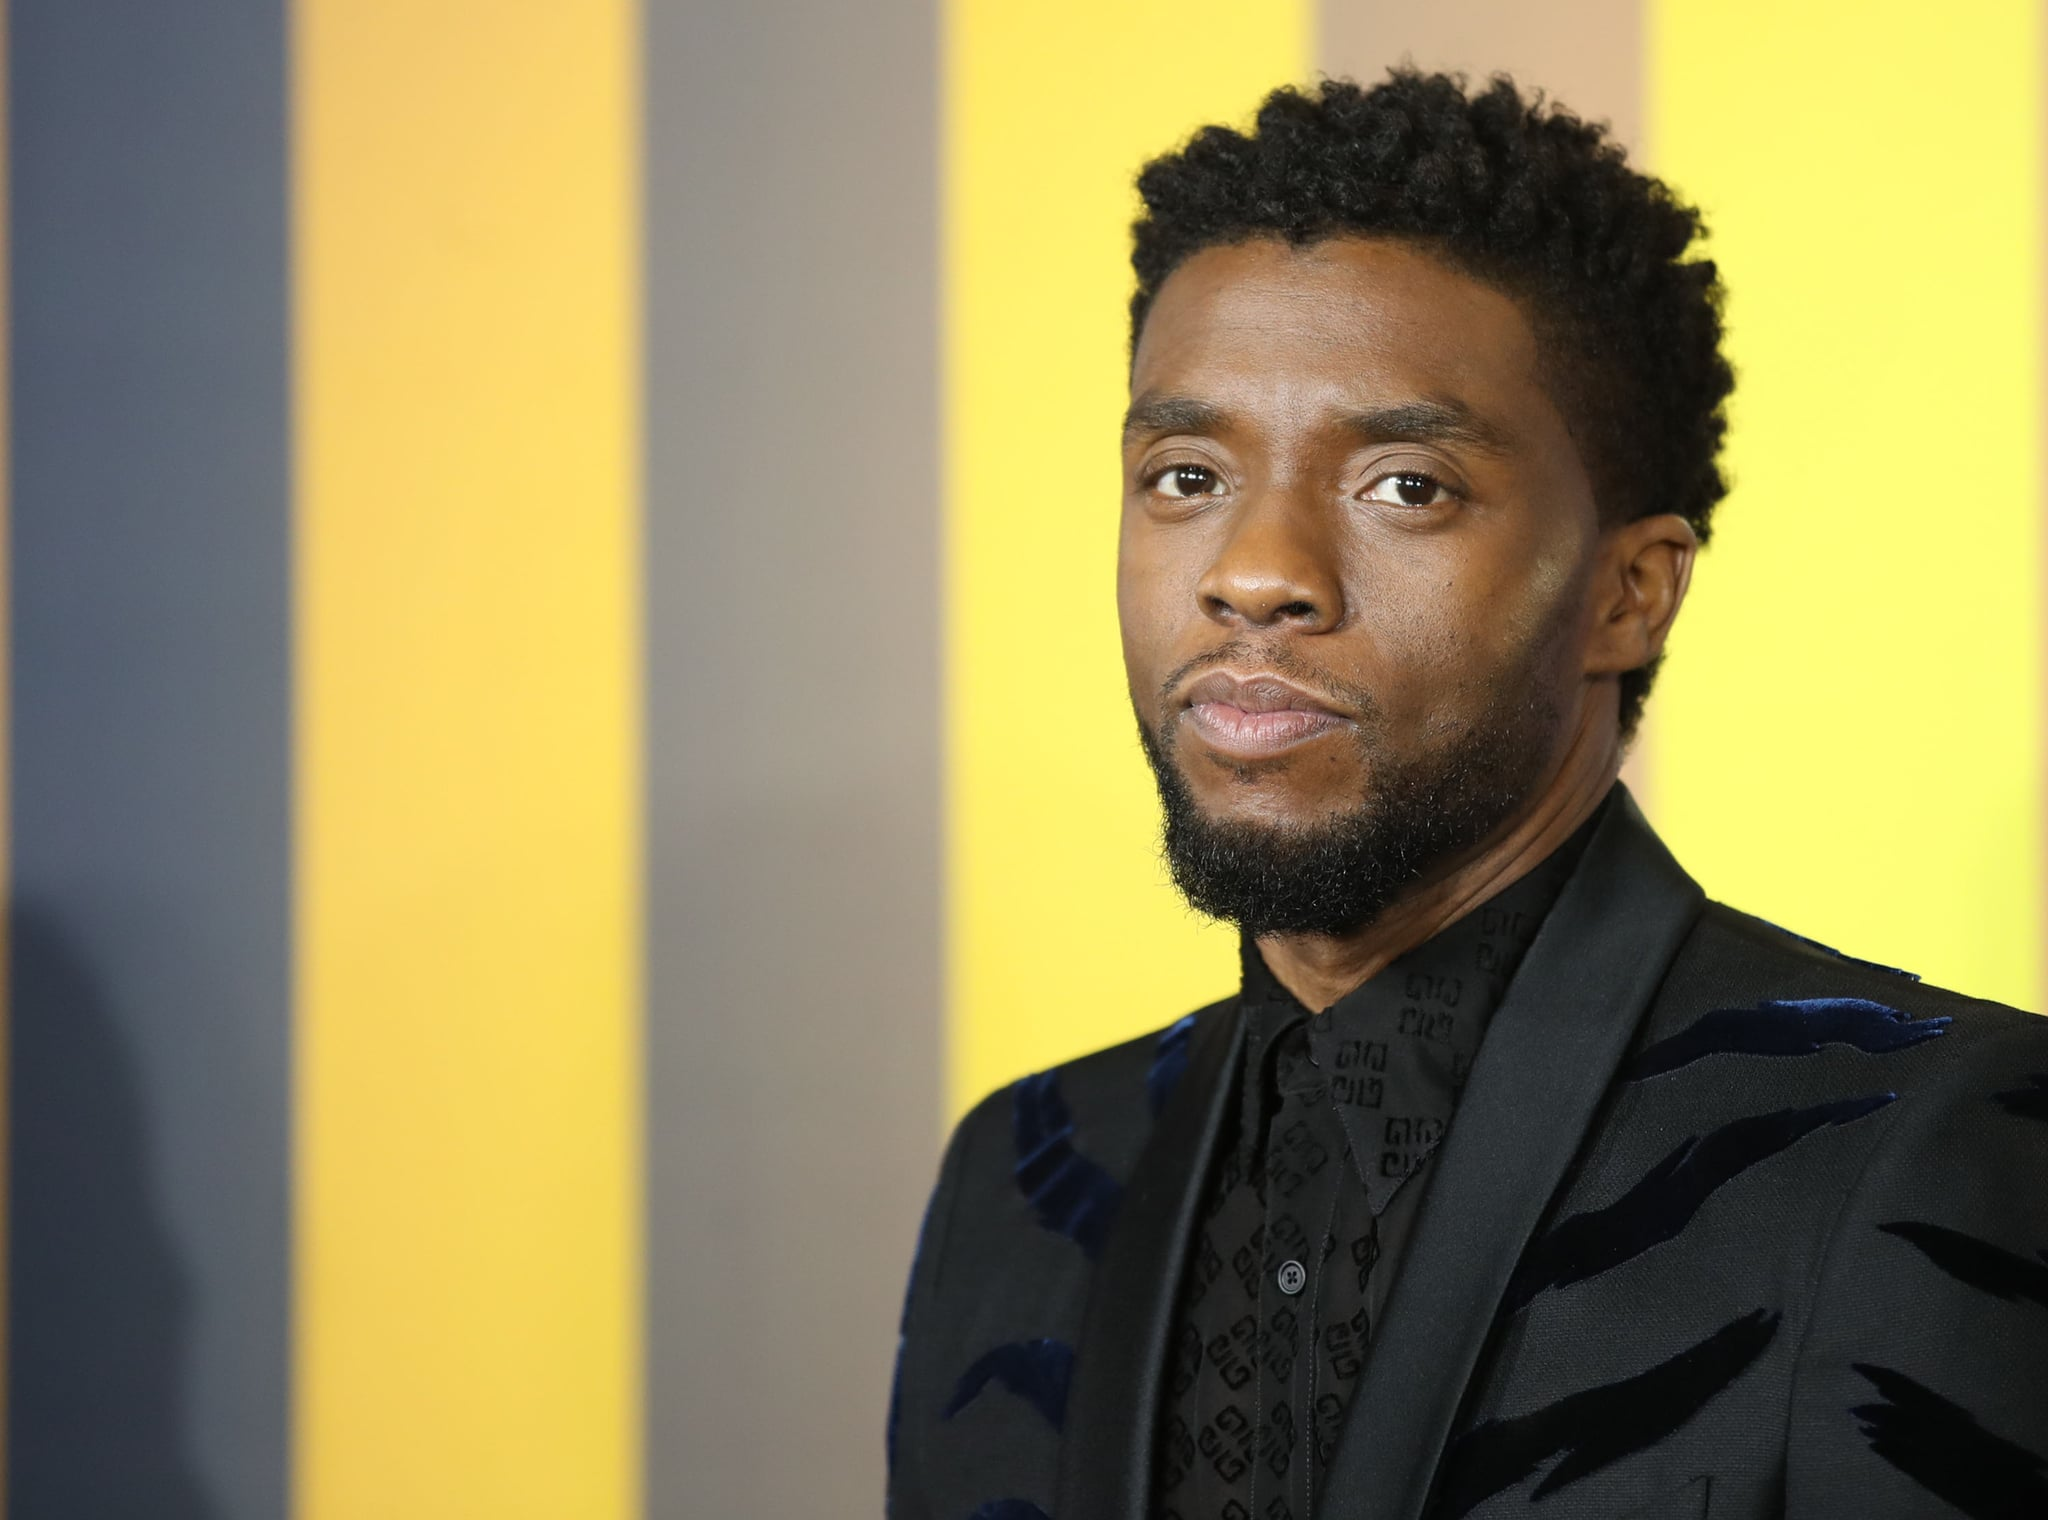 LONDON, ENGLAND - FEBRUARY 08:  Chadwick Boseman attends the European Premiere of 'Black Panther' at Eventim Apollo on February 8, 2018 in London, England.  (Photo by Mike Marsland/Mike Marsland/WireImage)